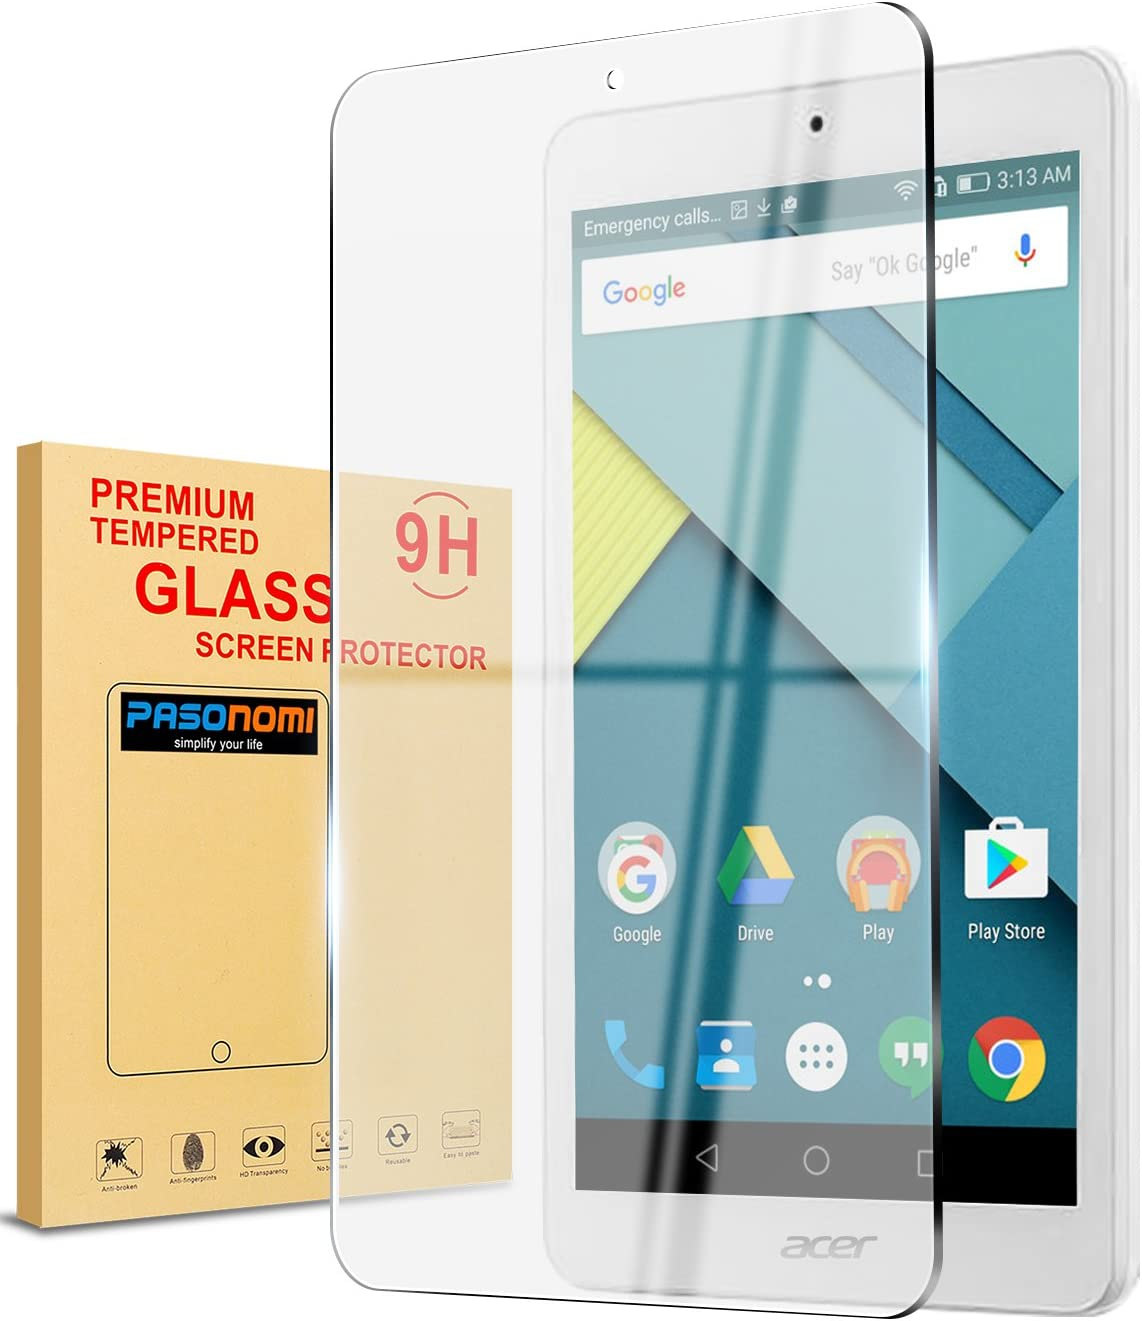 Acer Iconia One 7 B1-790 Screen Protector,Pasonomi [9H Hardness] [Crystal Clear] [Scratch-Resistant] Premium Tempered Glass Screen Protector Film for Acer Iconia One 7 B1-790